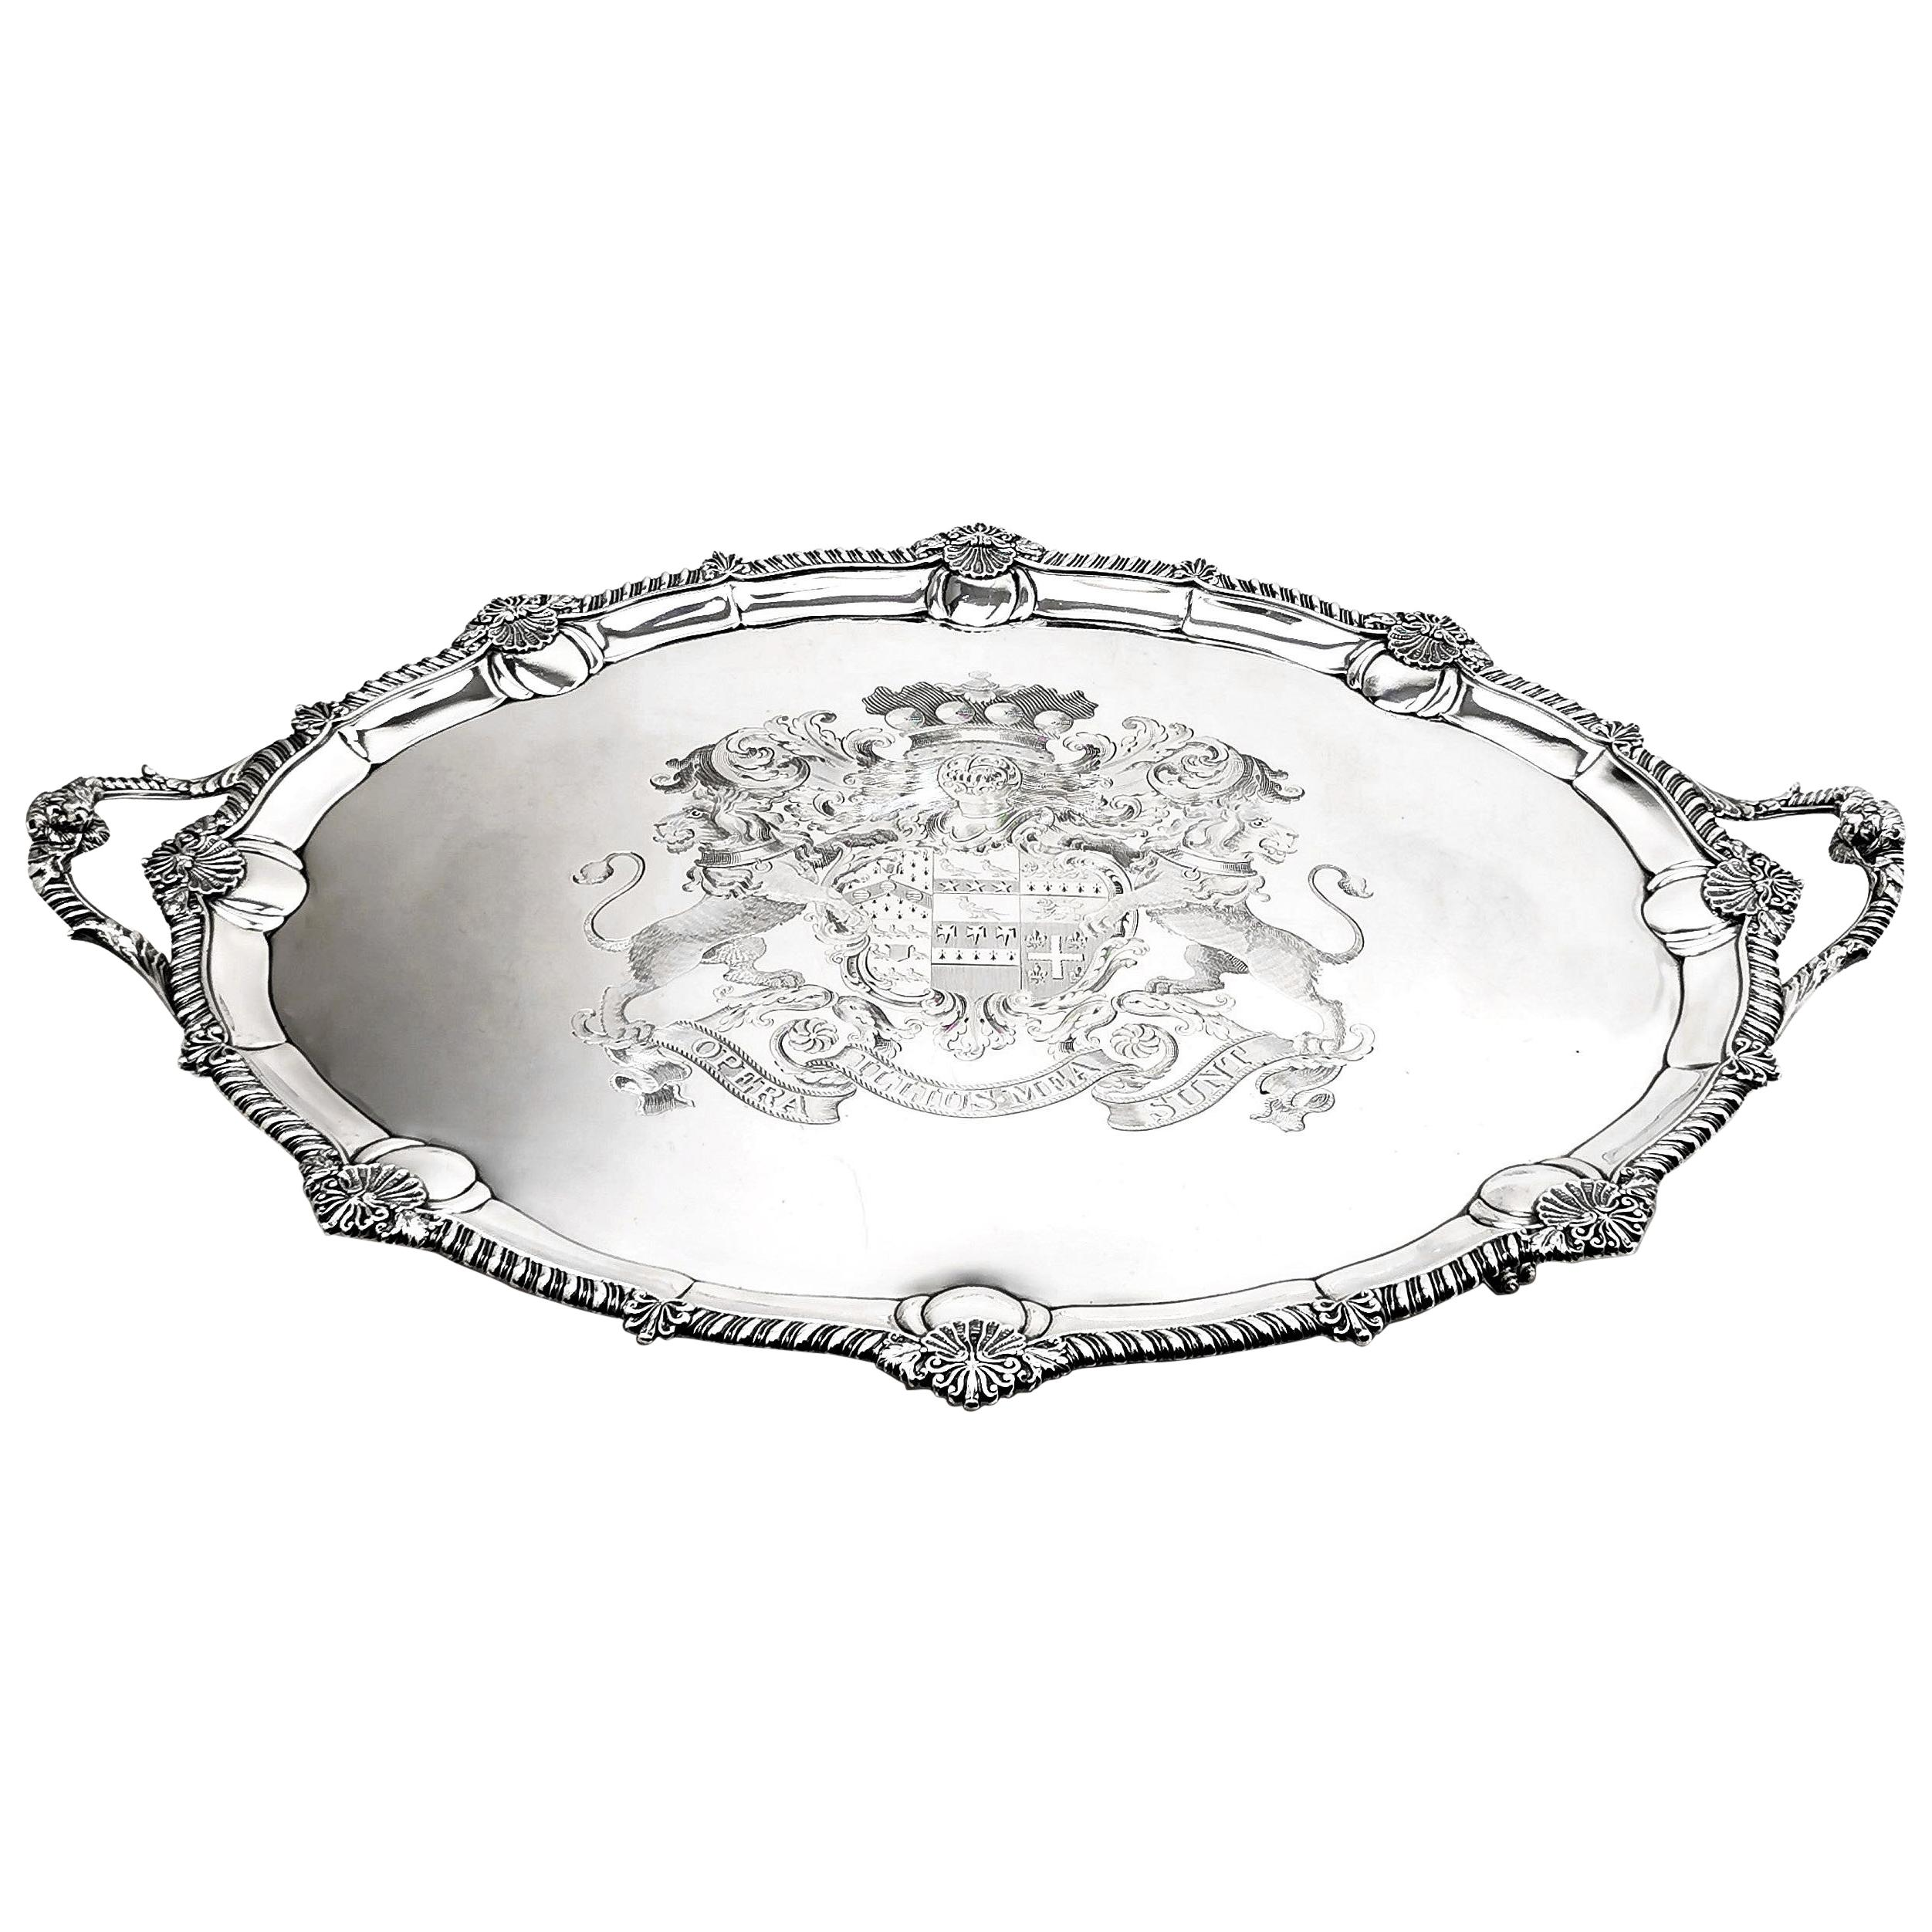 The Brownlow Tray 1809 Very Large Antique Georgian Silver Tray Serving Tea